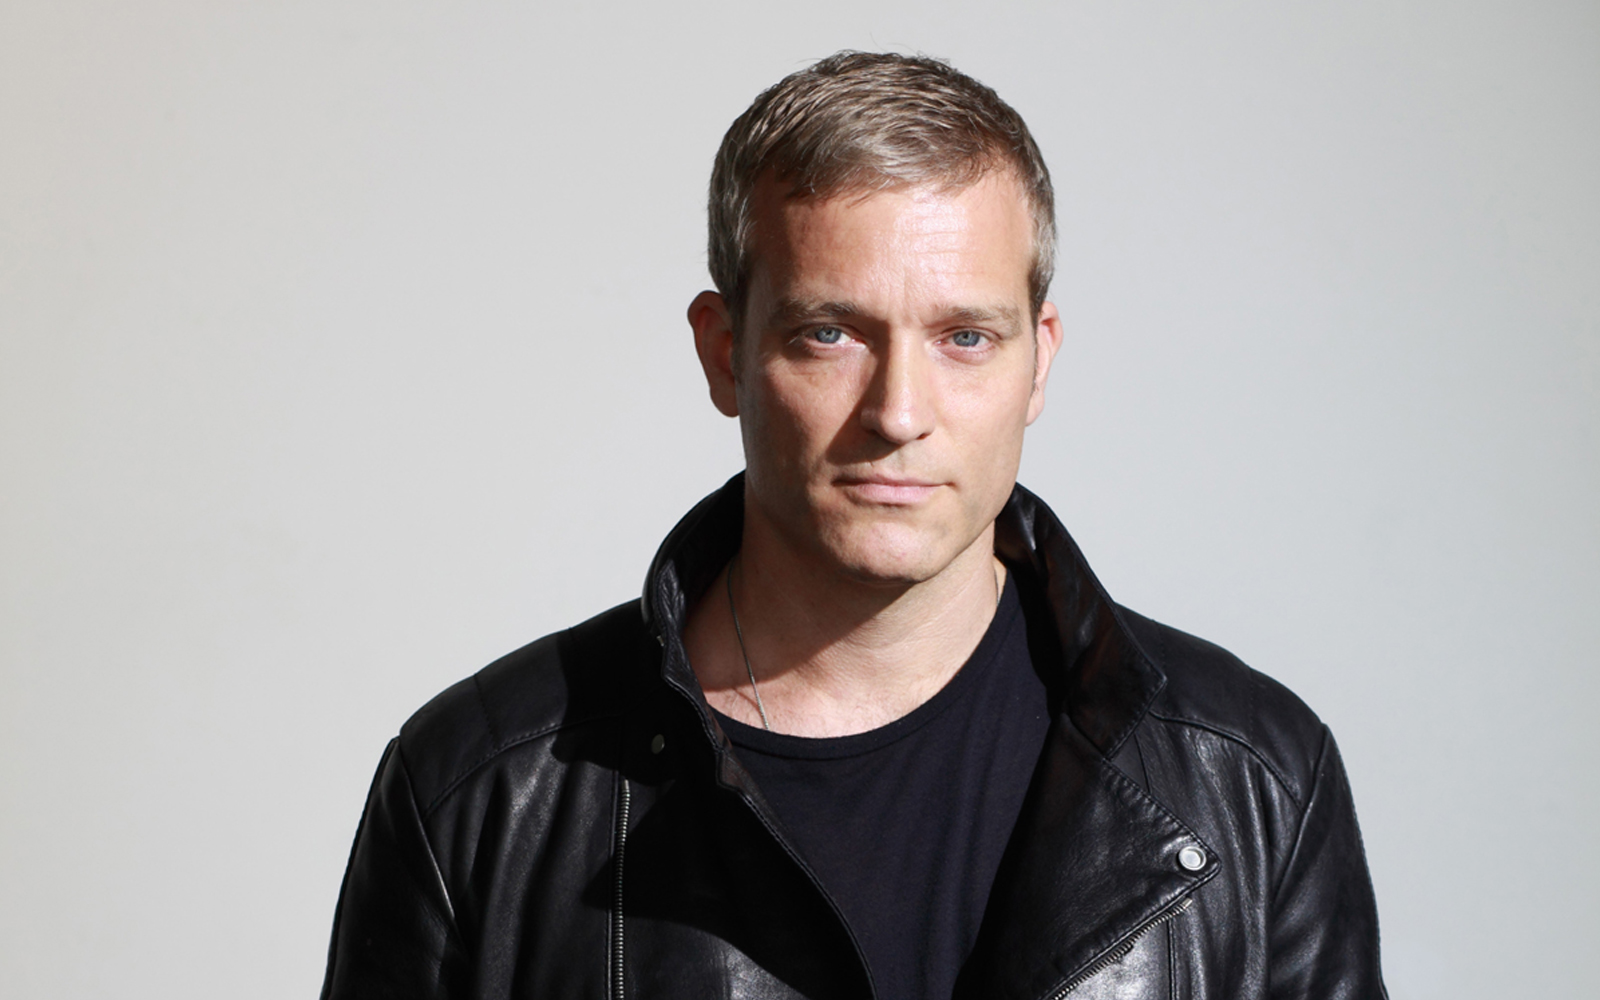 BEN KLOCK 6 HOUR SET